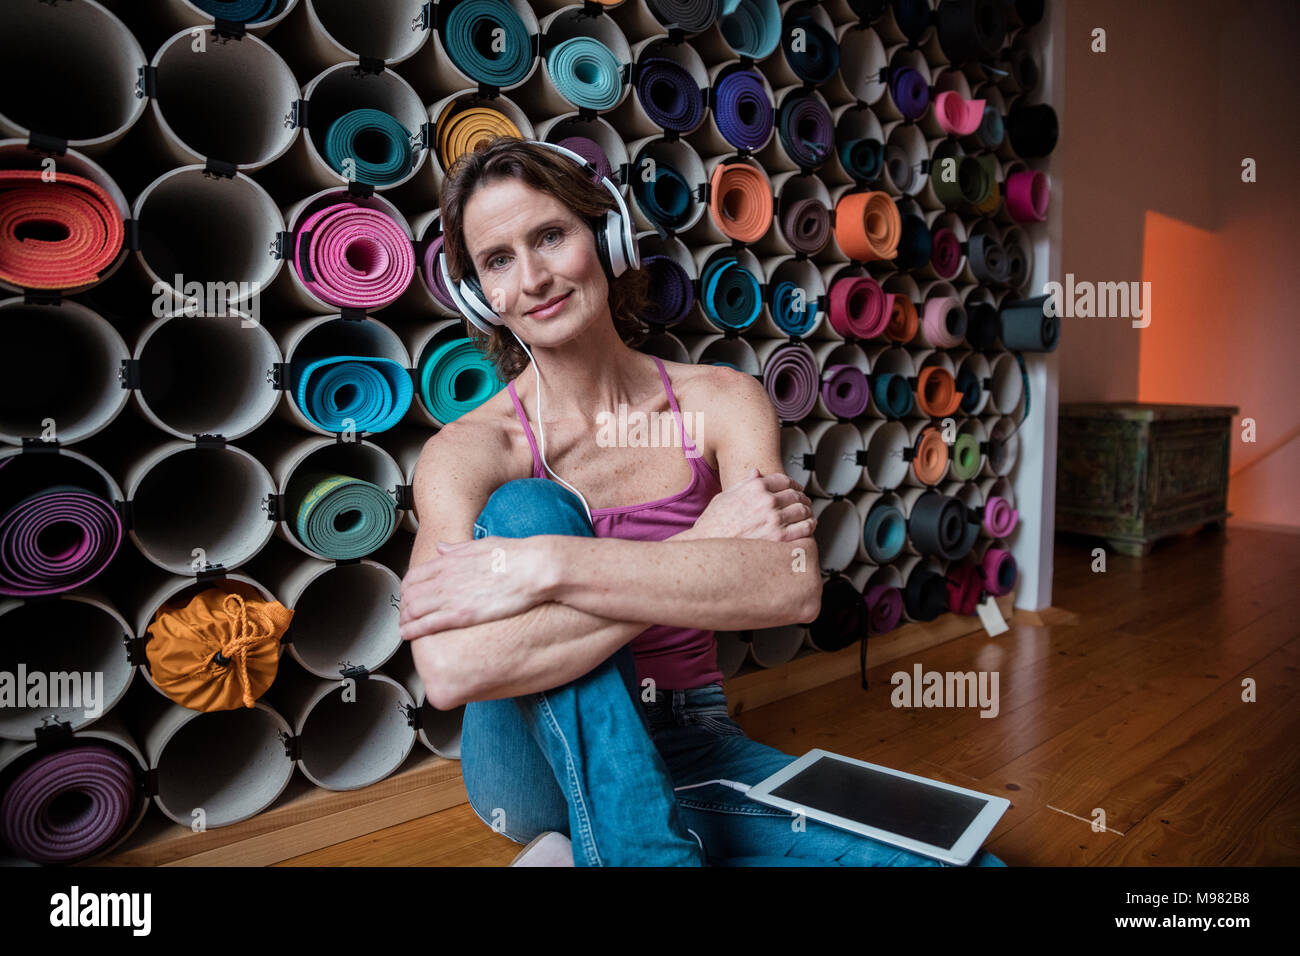 Portrait of smiling mature woman listening to music in front of assortment of yoga mats - Stock Image